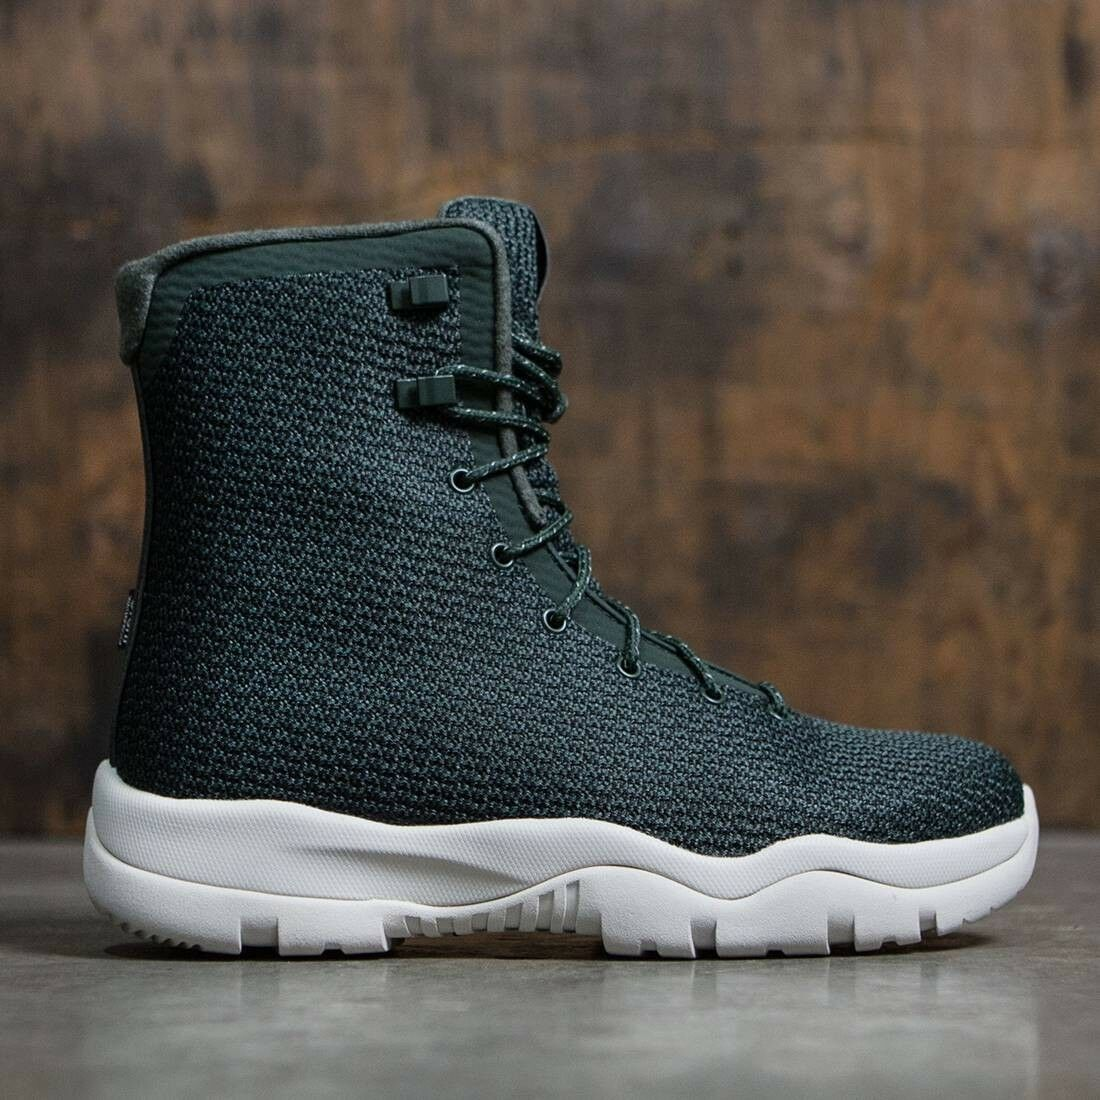 Nike Air Jordan Future Boot Grove Green Size 13. 13. 13. 854554-300 95ffe6